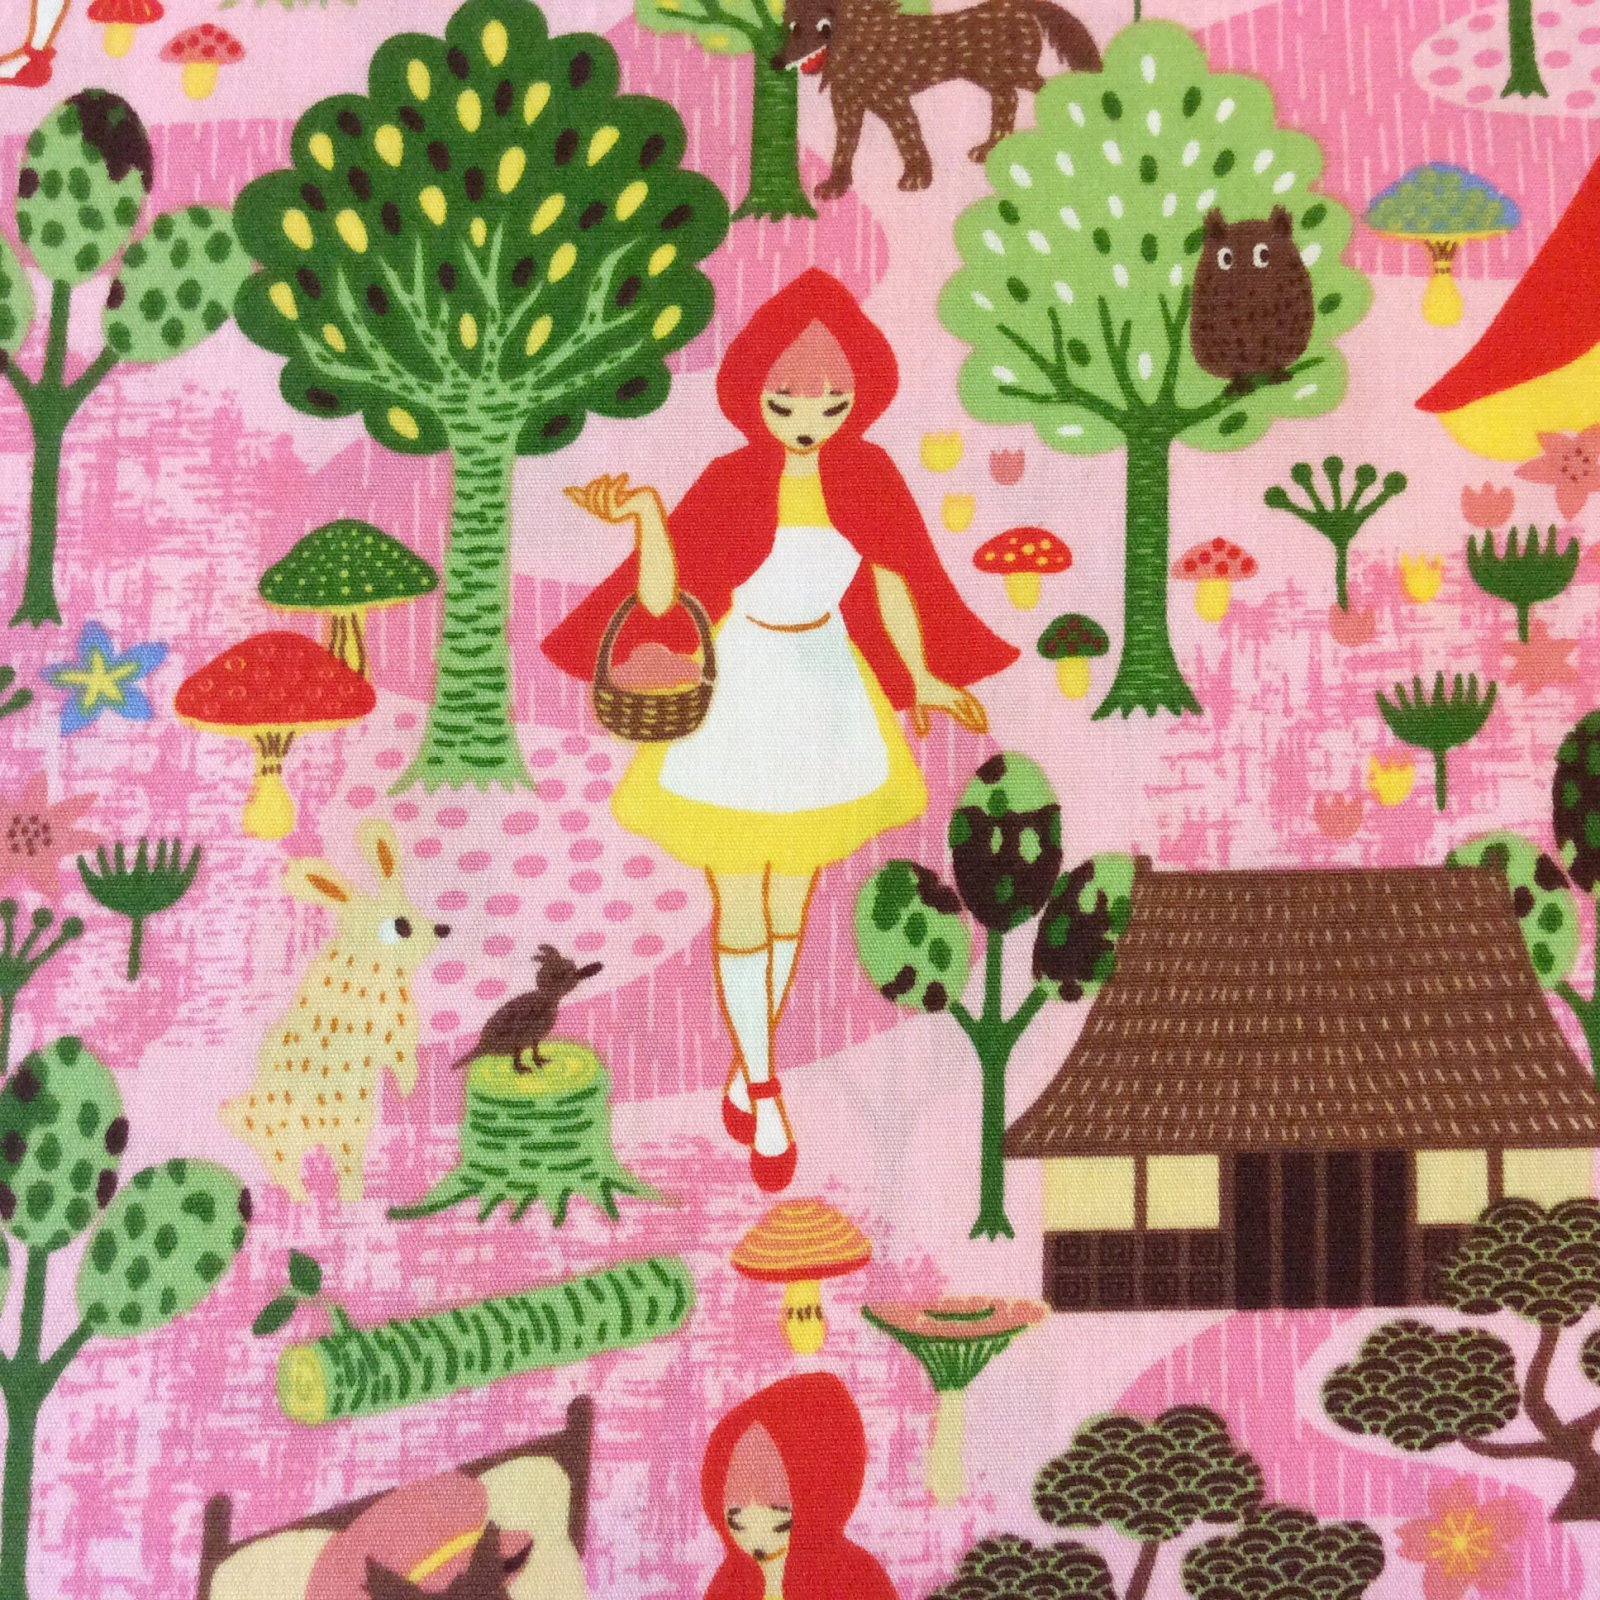 Cosplay Red Riding Hood Fantasy Japan Japanese Asian Forest Tale Cotton Quilt Fabric TP025